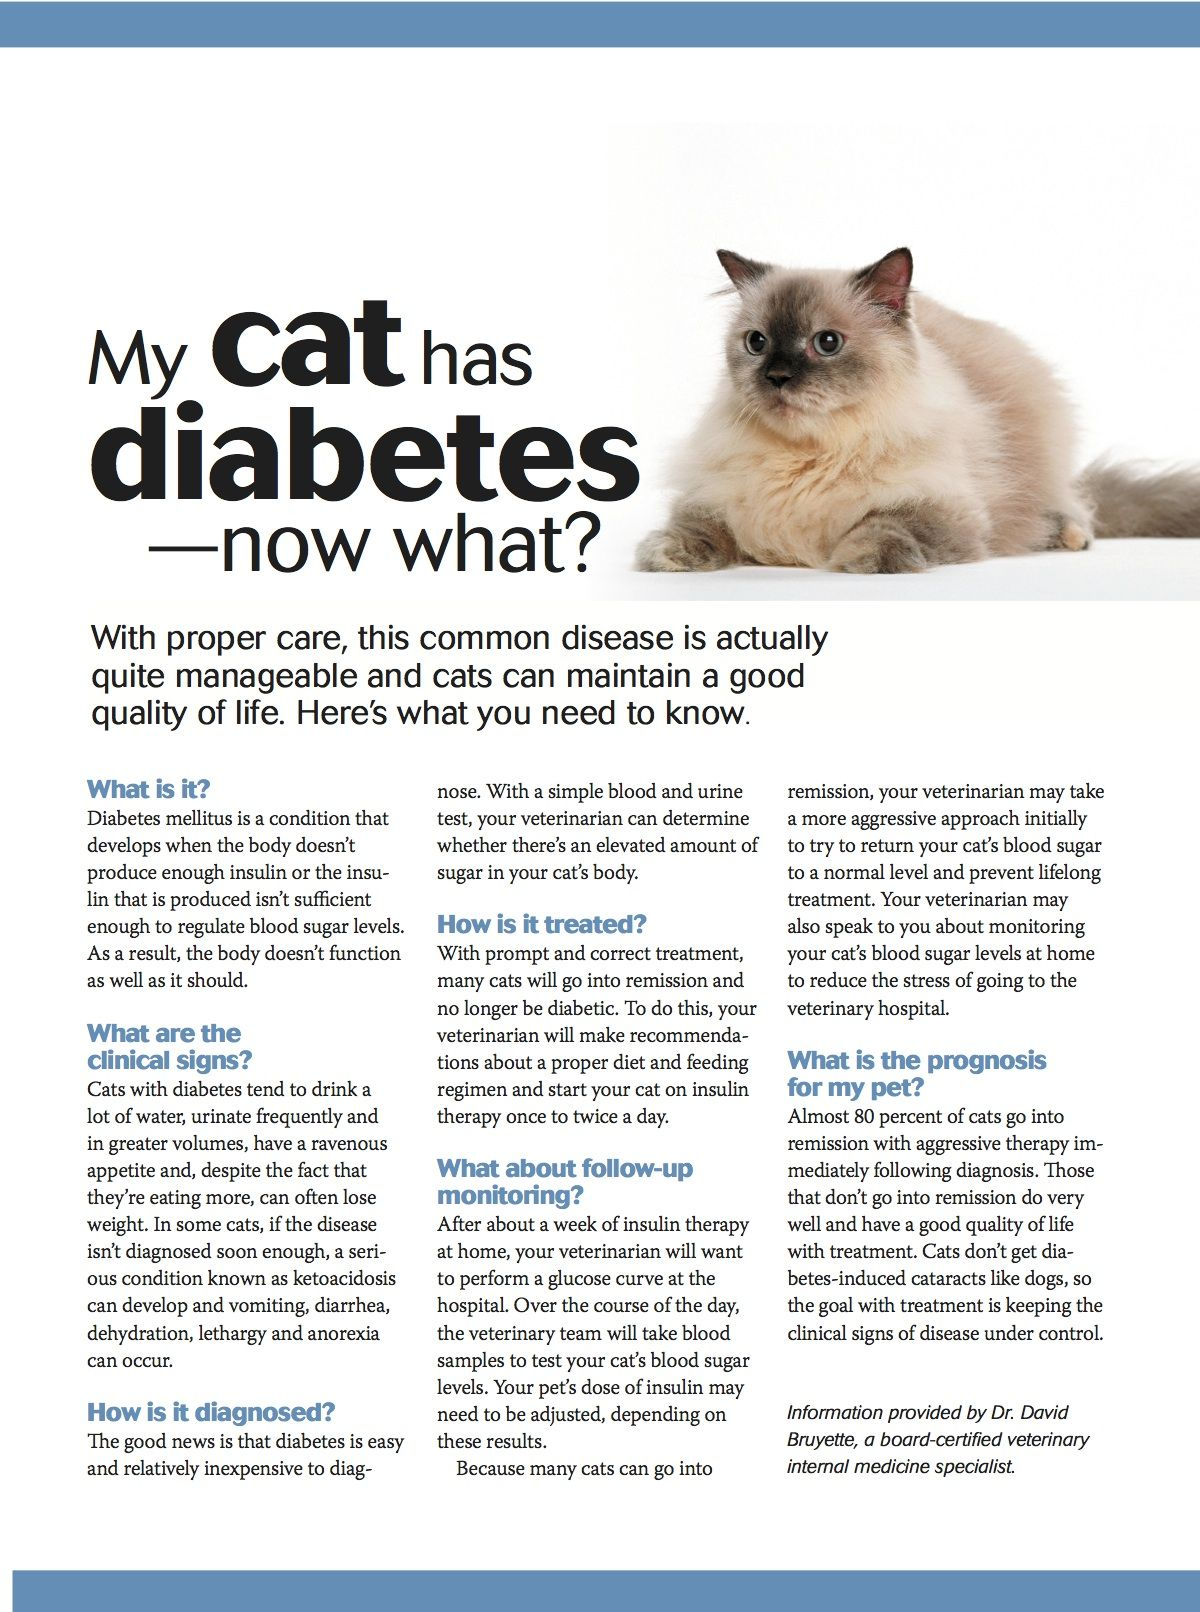 My Cat Has Diabetes Now What Cat Health Pet Care Printables Pet Health